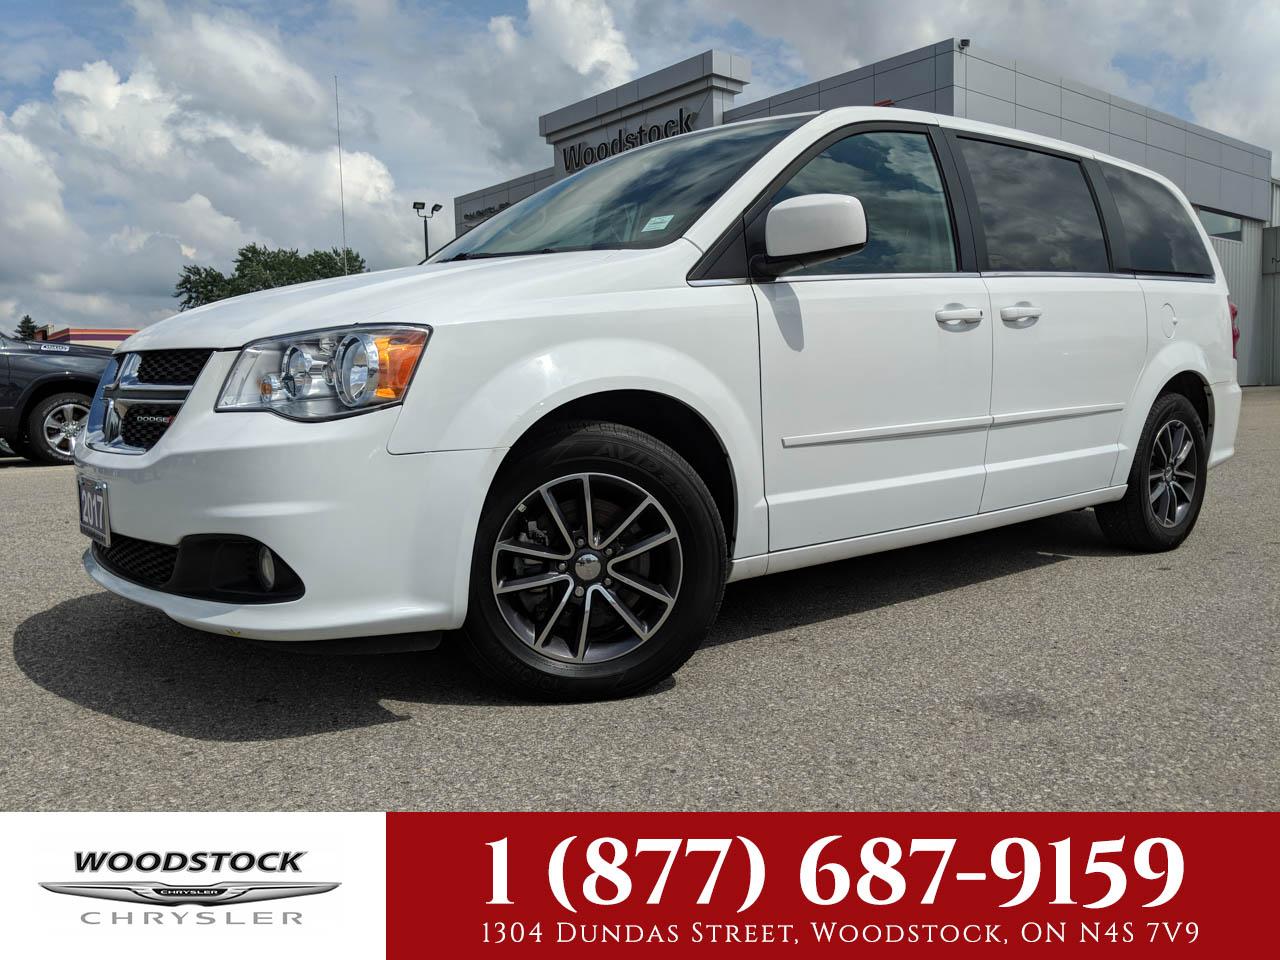 2017 Dodge Grand Caravan PREMIUM PLUS Minivan